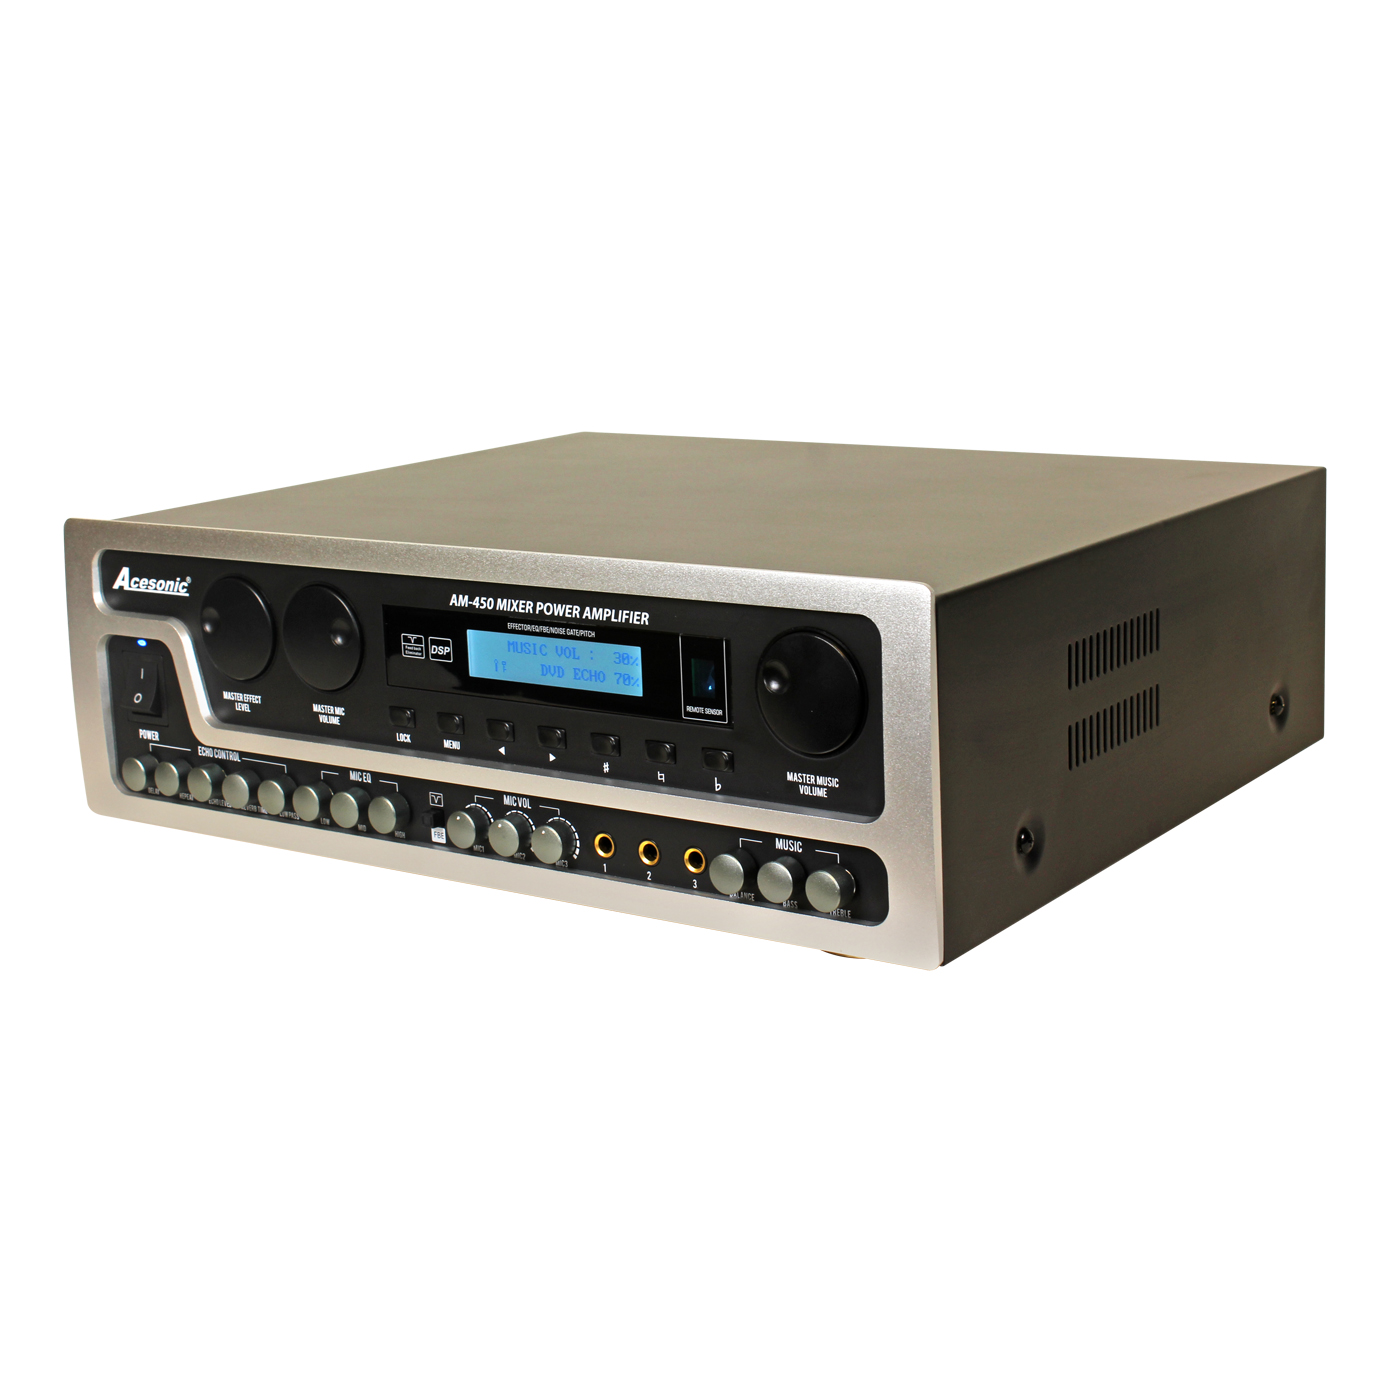 Acesonic AM-450 800W Power Mixing Amplifier, 4-Channel